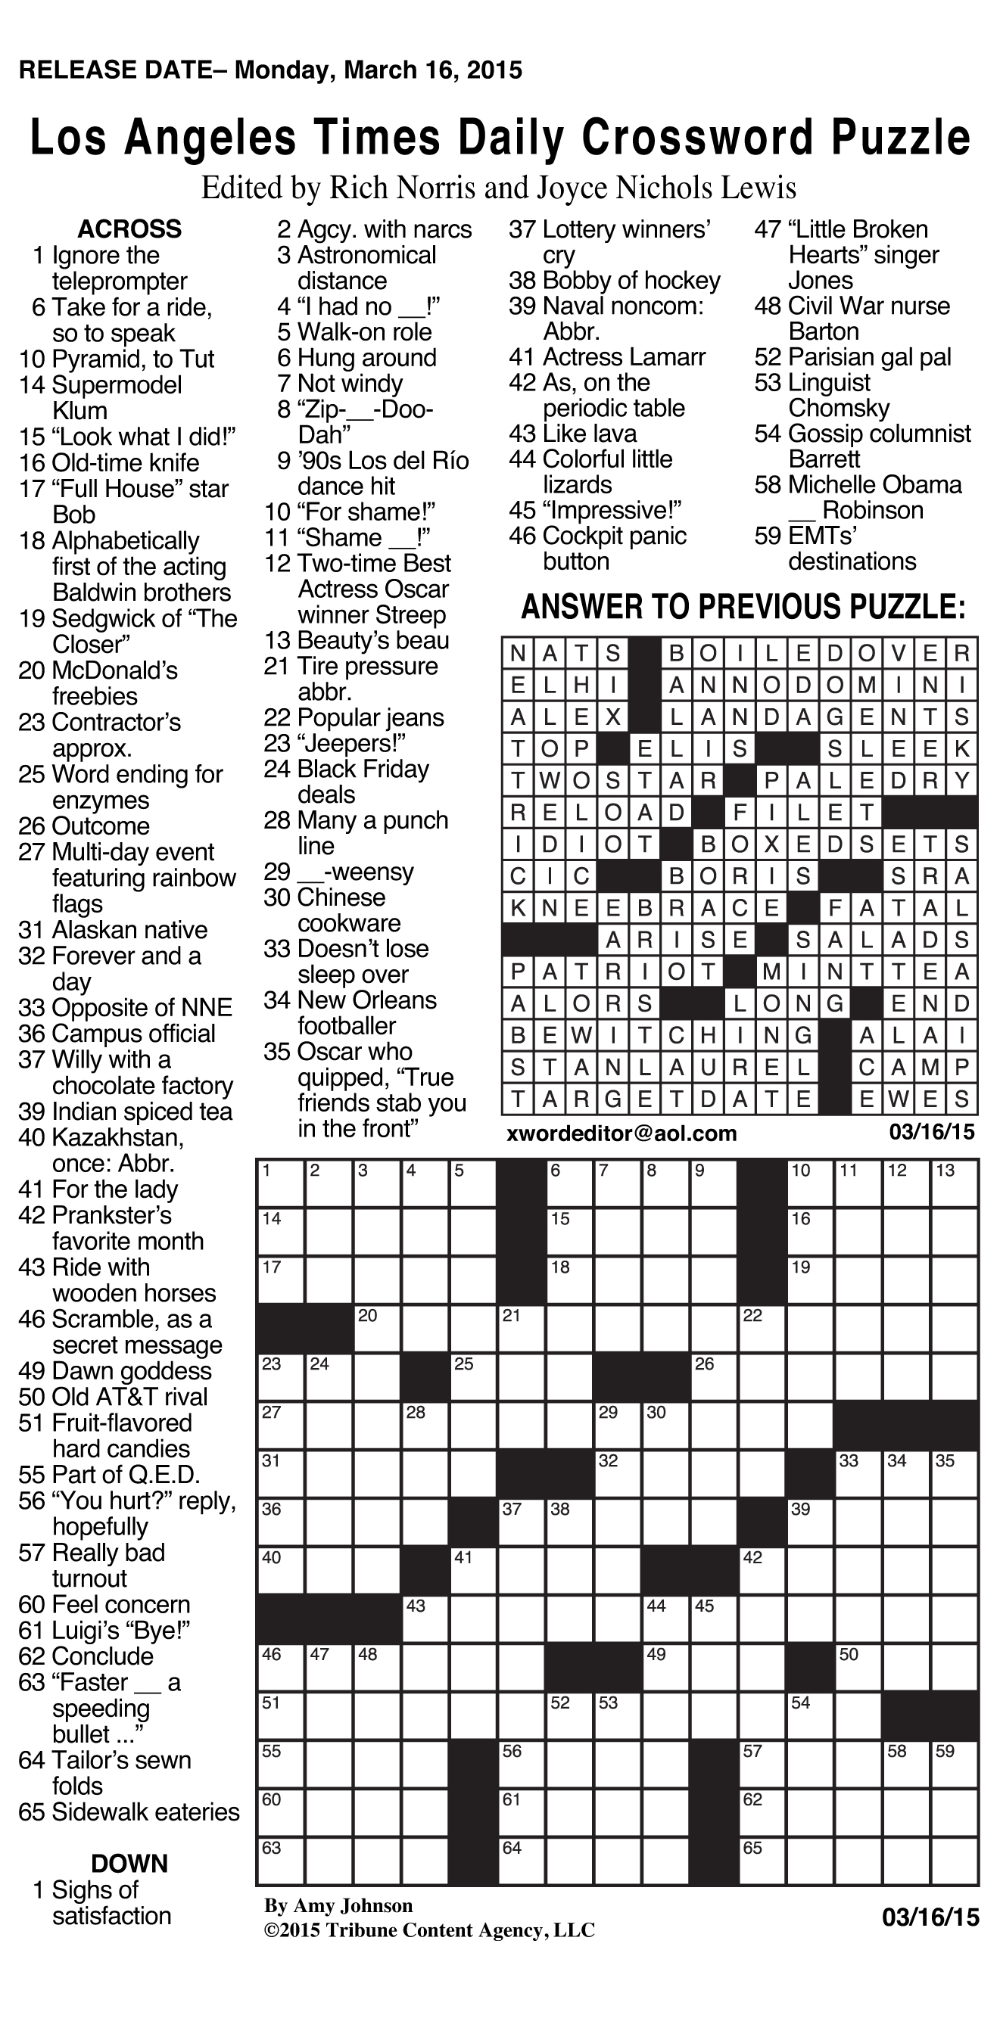 Sample of Los Angeles Times Daily Crossword Puzzle